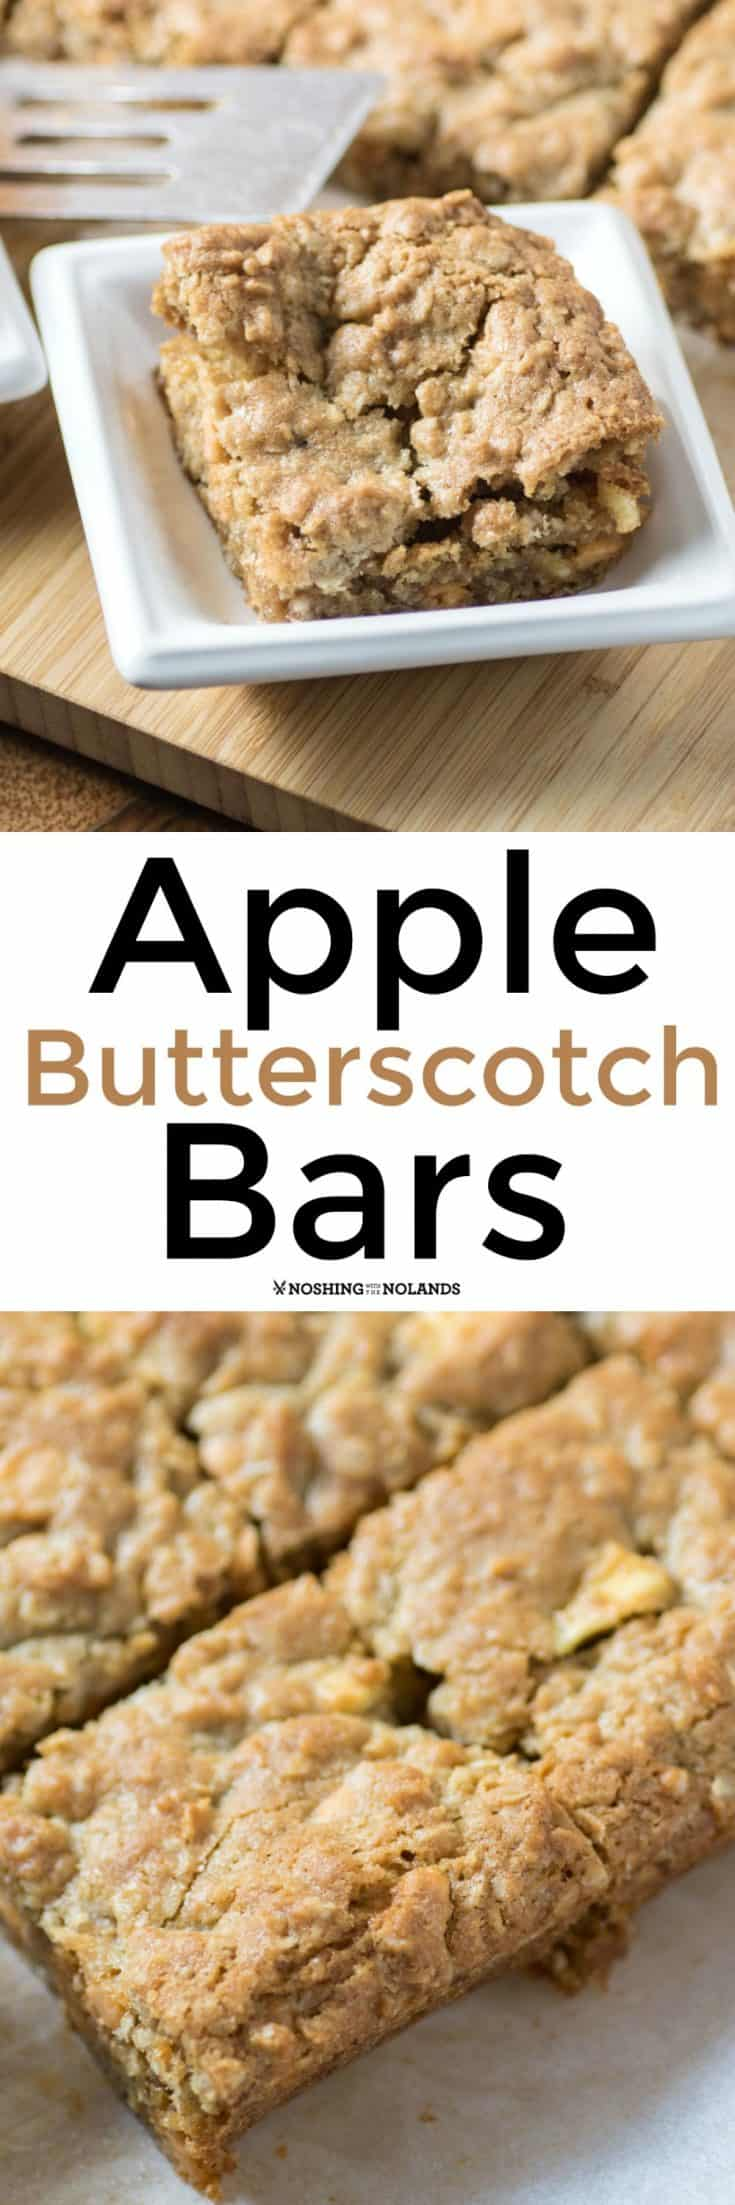 These sweet Apple Butterscotch Bars are a nice change up from using chocolate chips and are a wonderful treat year round. Kids would love them in their lunchboxes!! #apple #butterscotch #bars